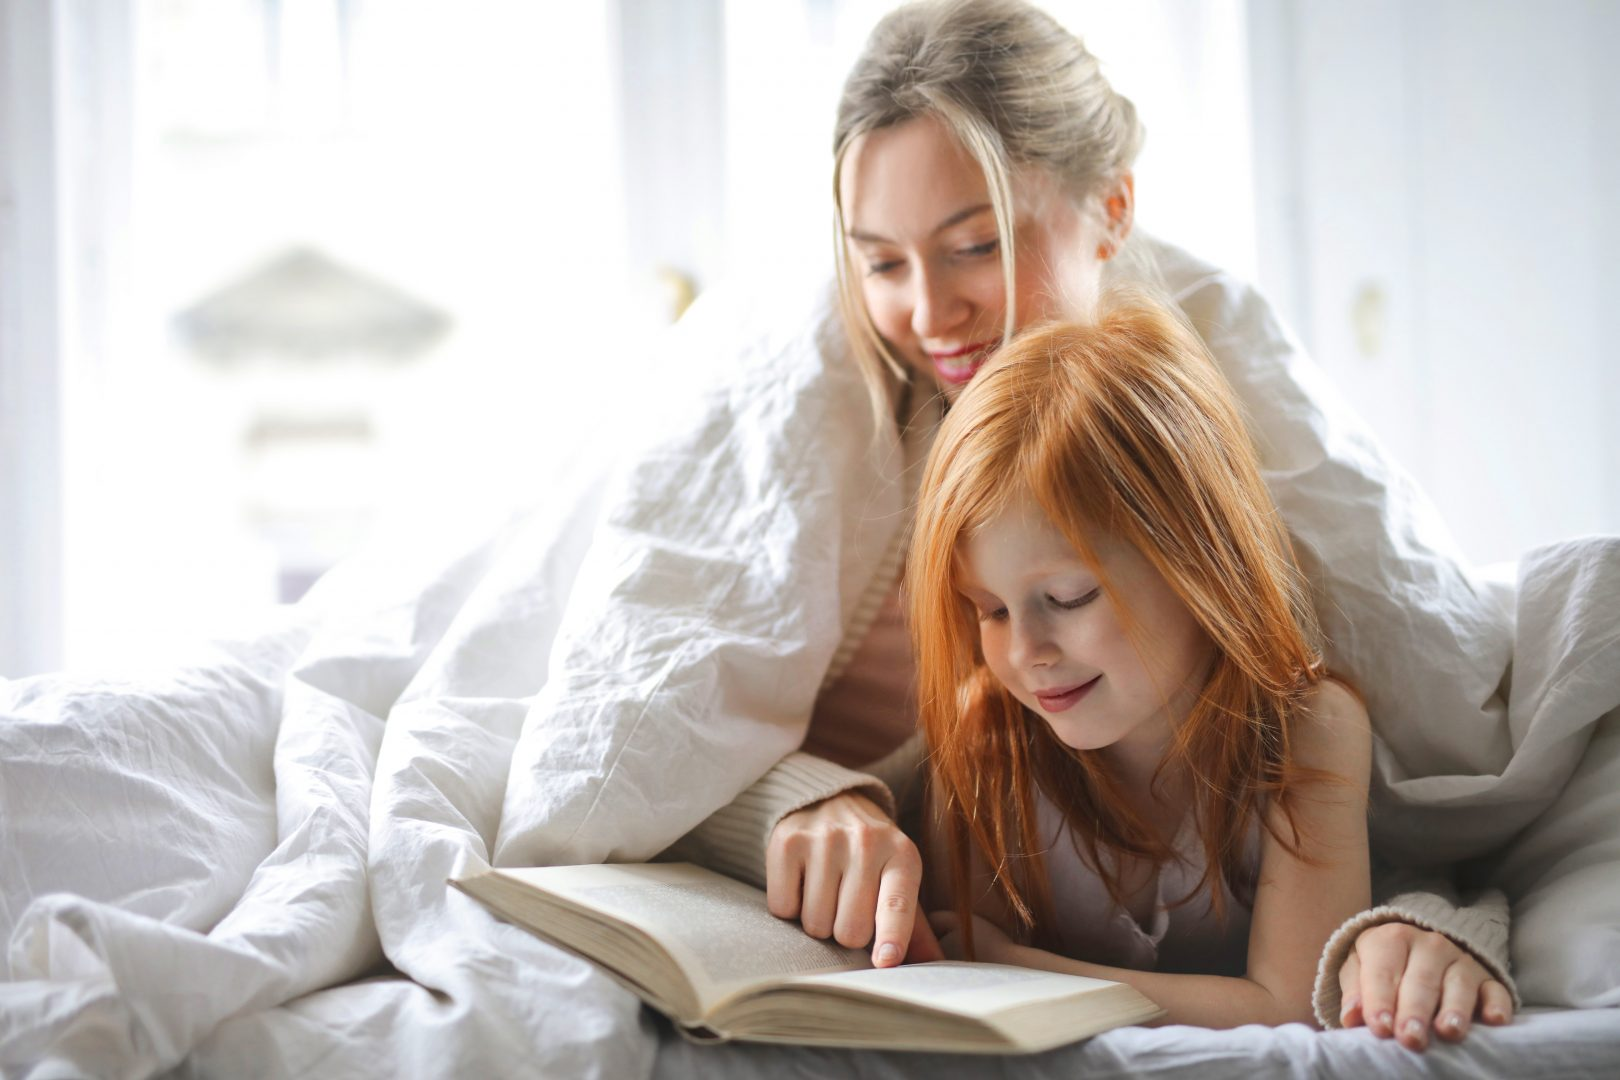 mother keeping her kids busy by reading a book to her daughter